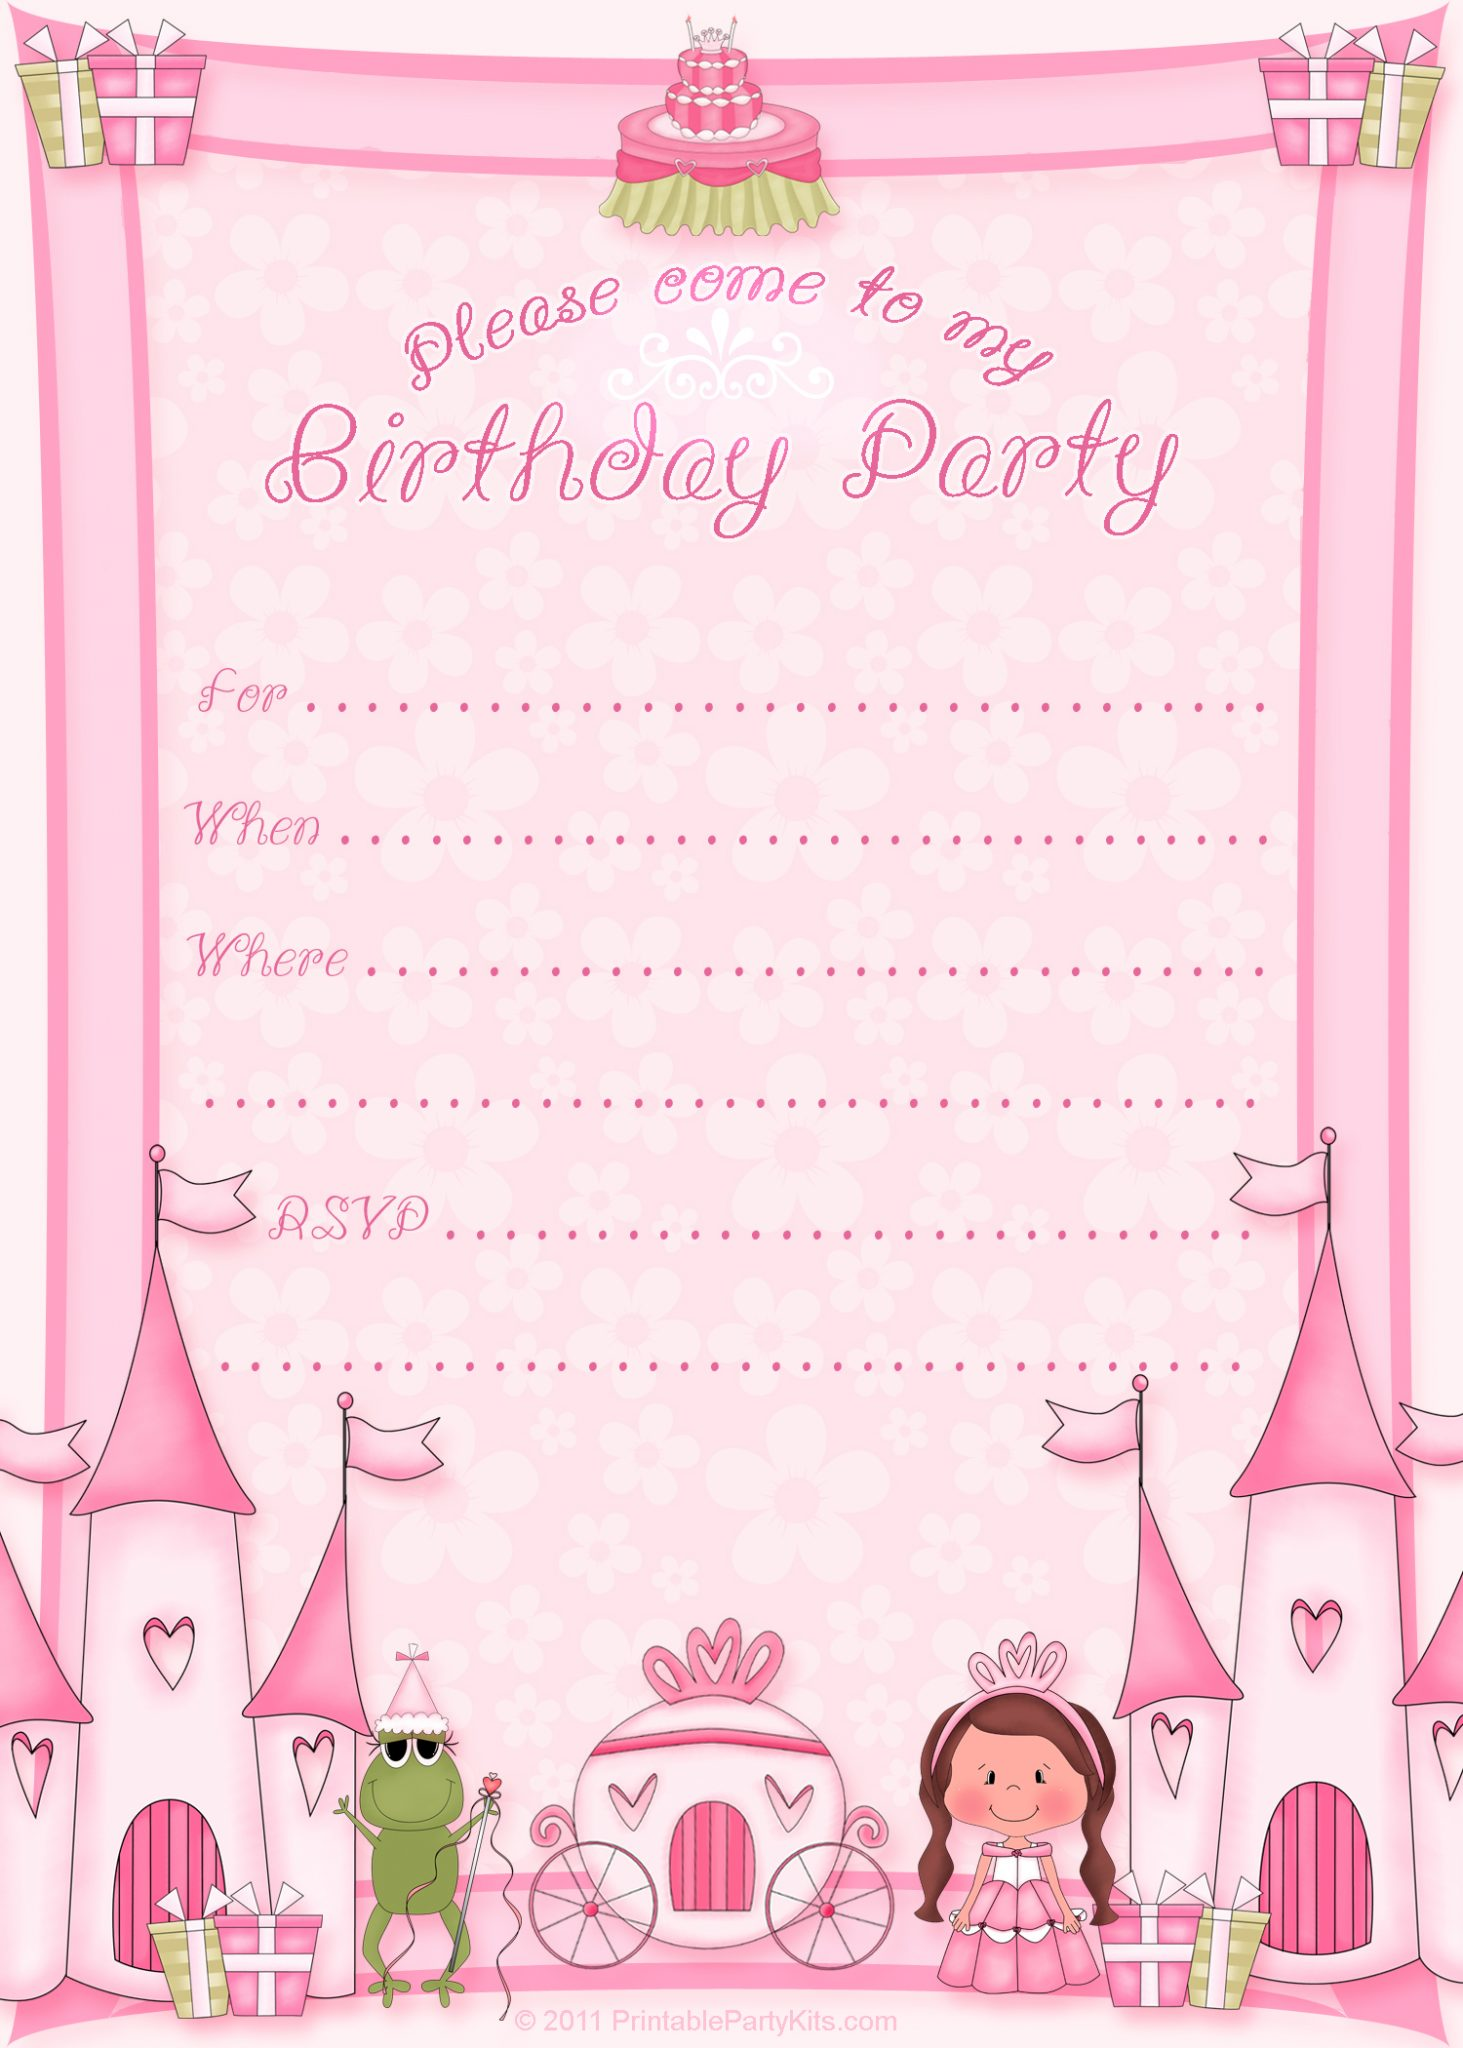 50 Free Birthday Invitation Templates You Will Love These – Invitation Templates for Free